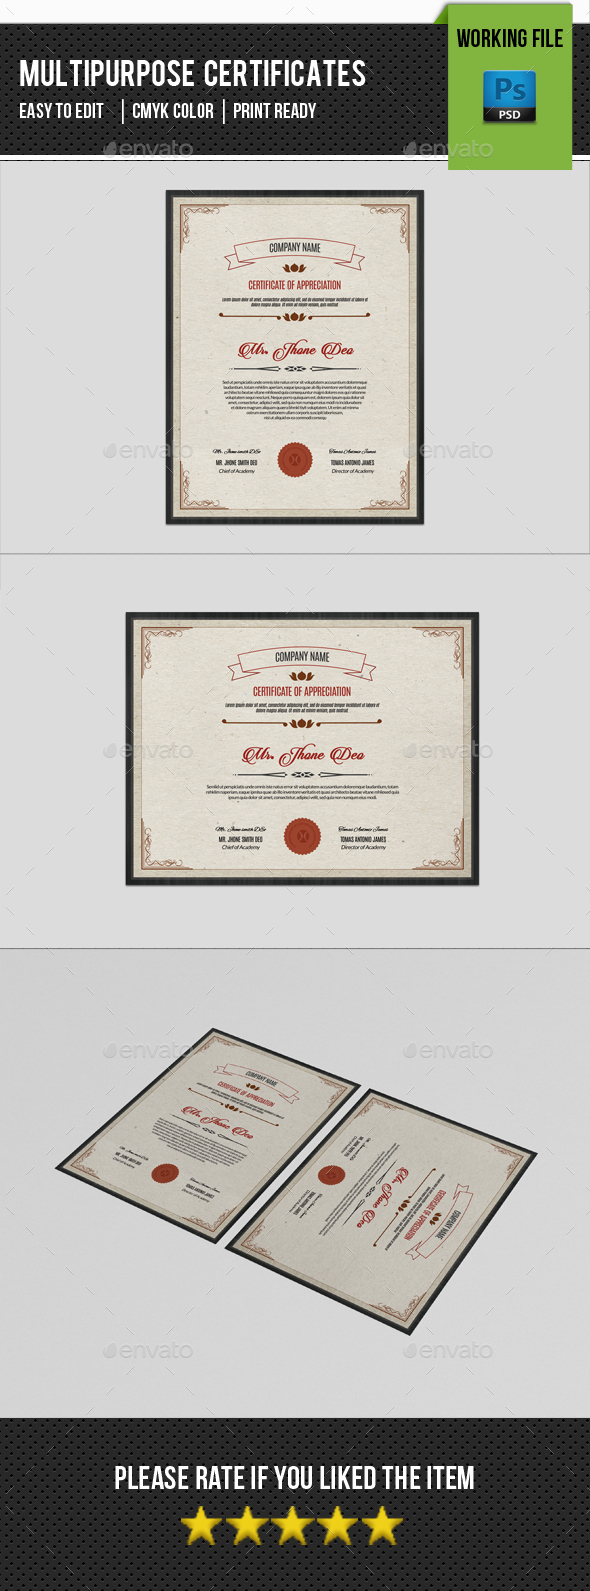 Multipurpose Certificate Template-V01 - Certificates Stationery